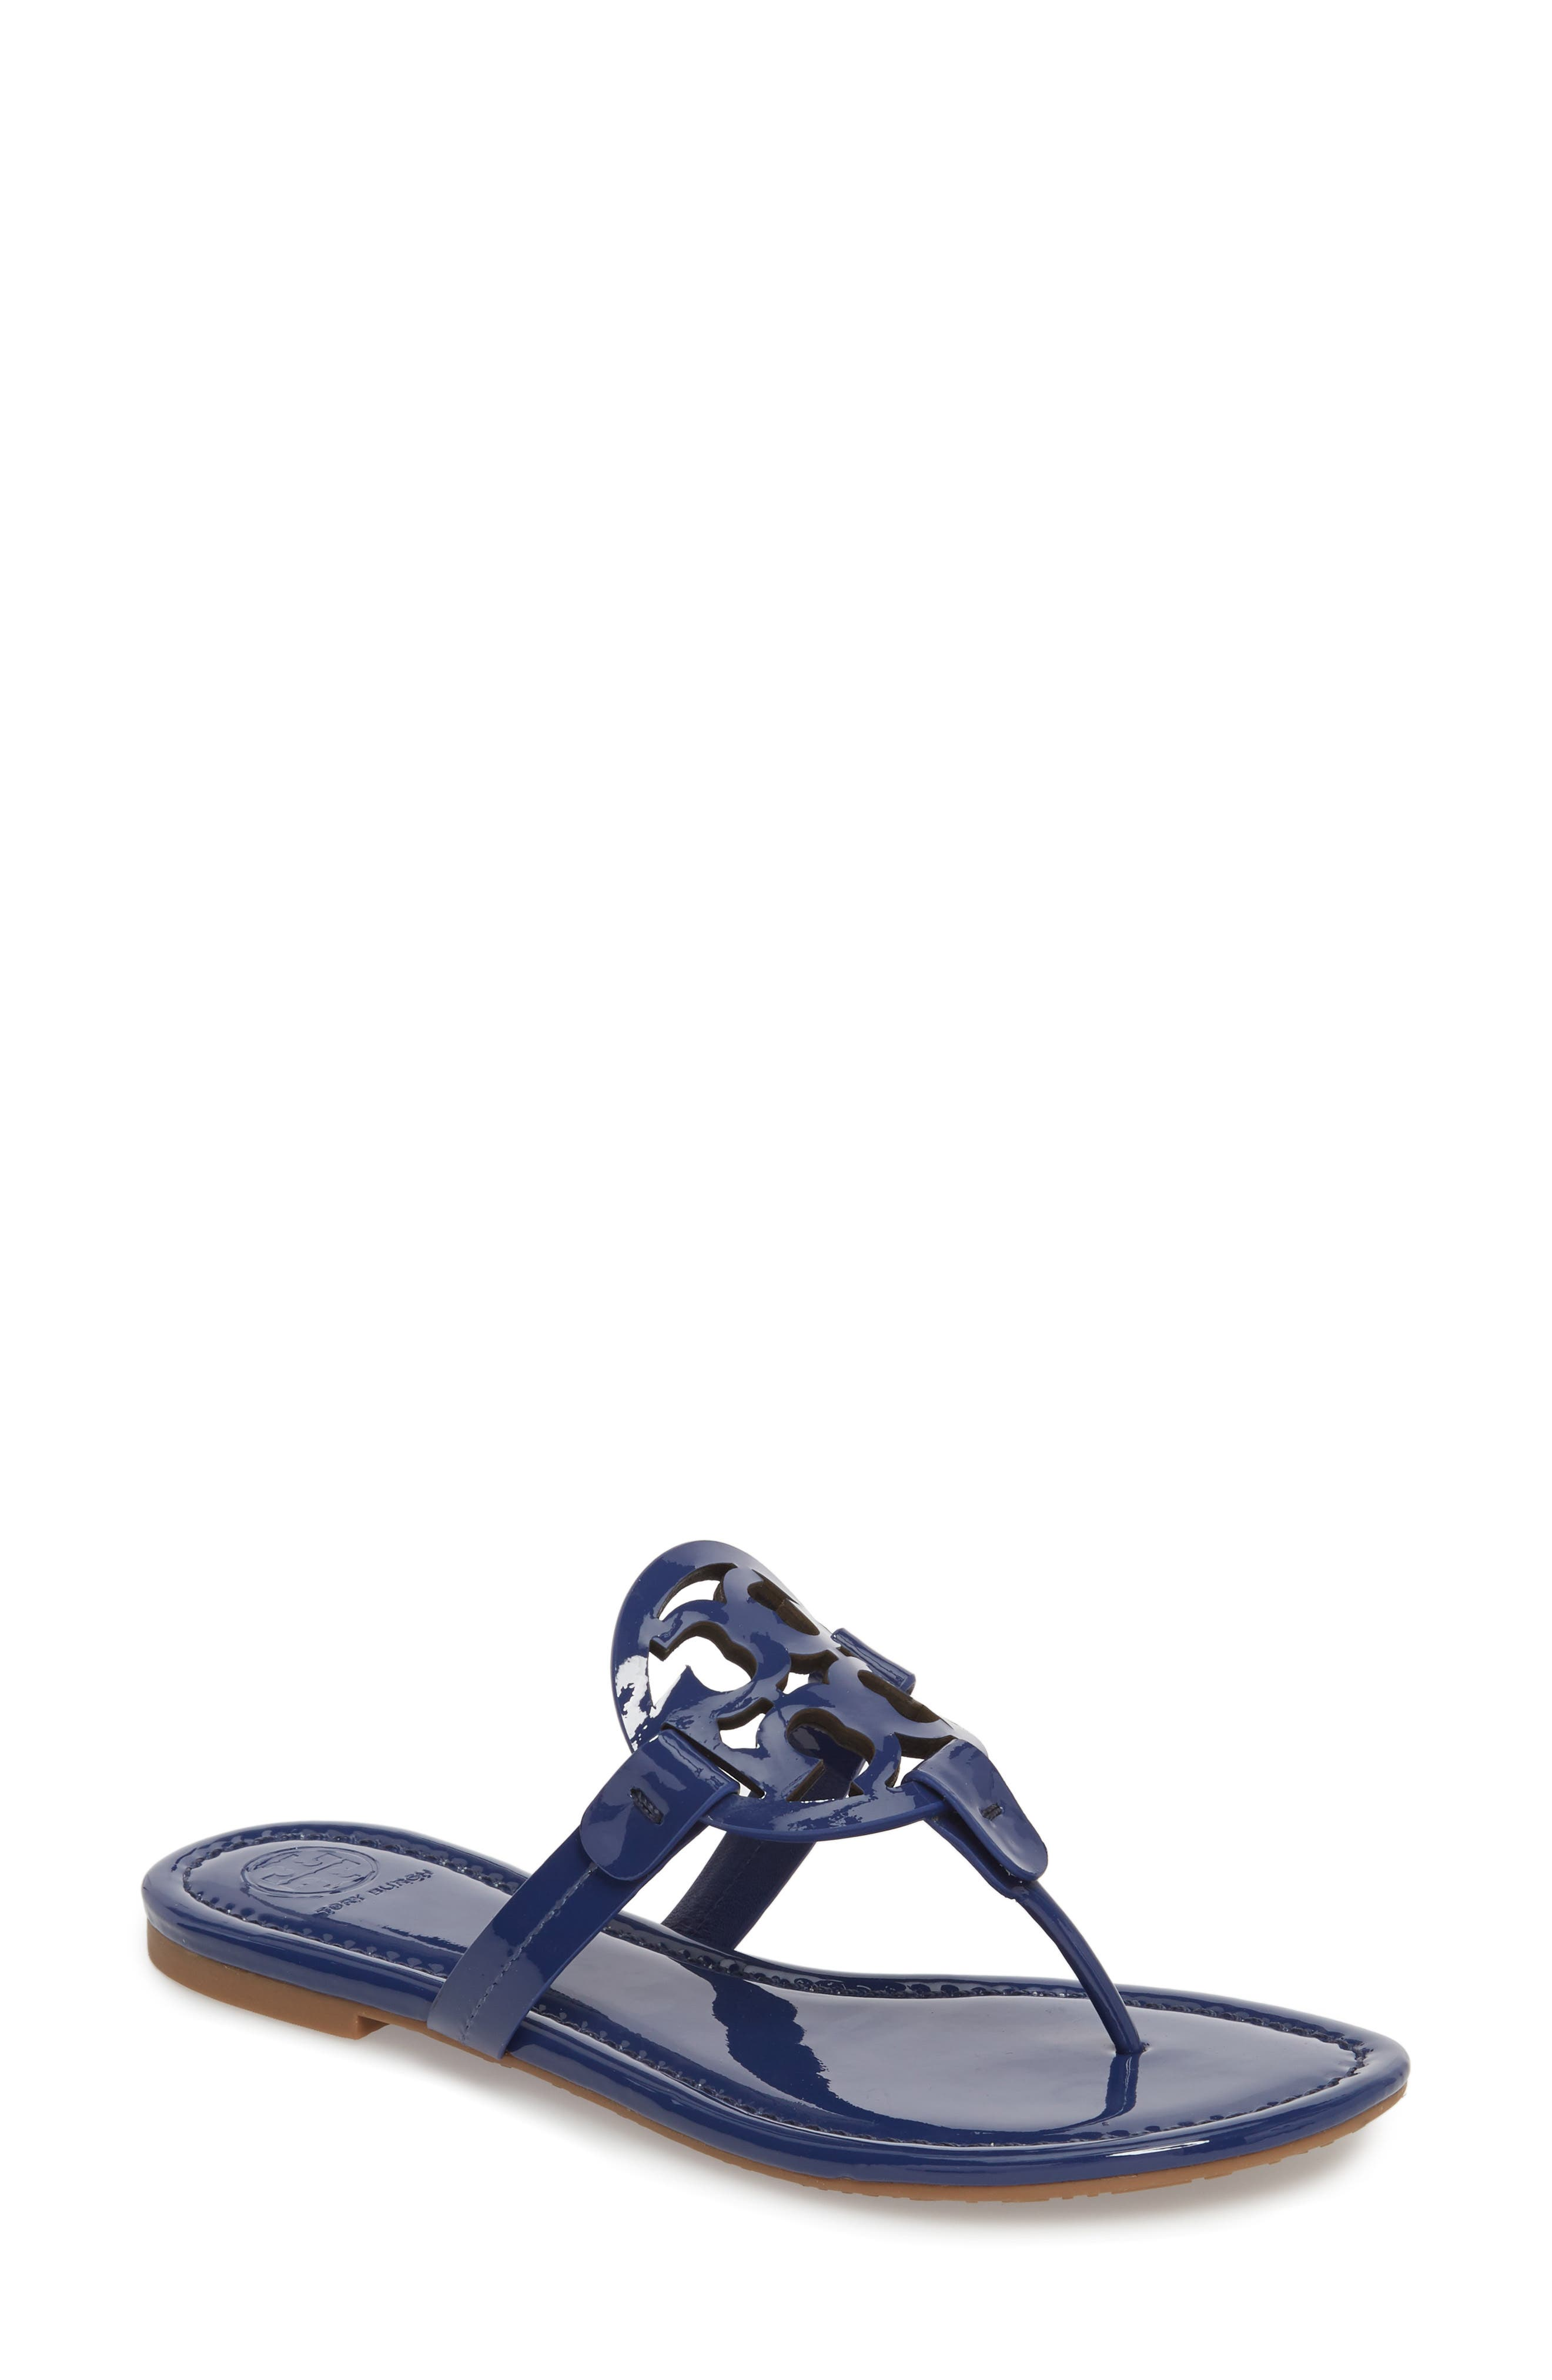 10f02a42c8a6 ... sandals from Tory Burch. A chic alternative to the classic flip-flop